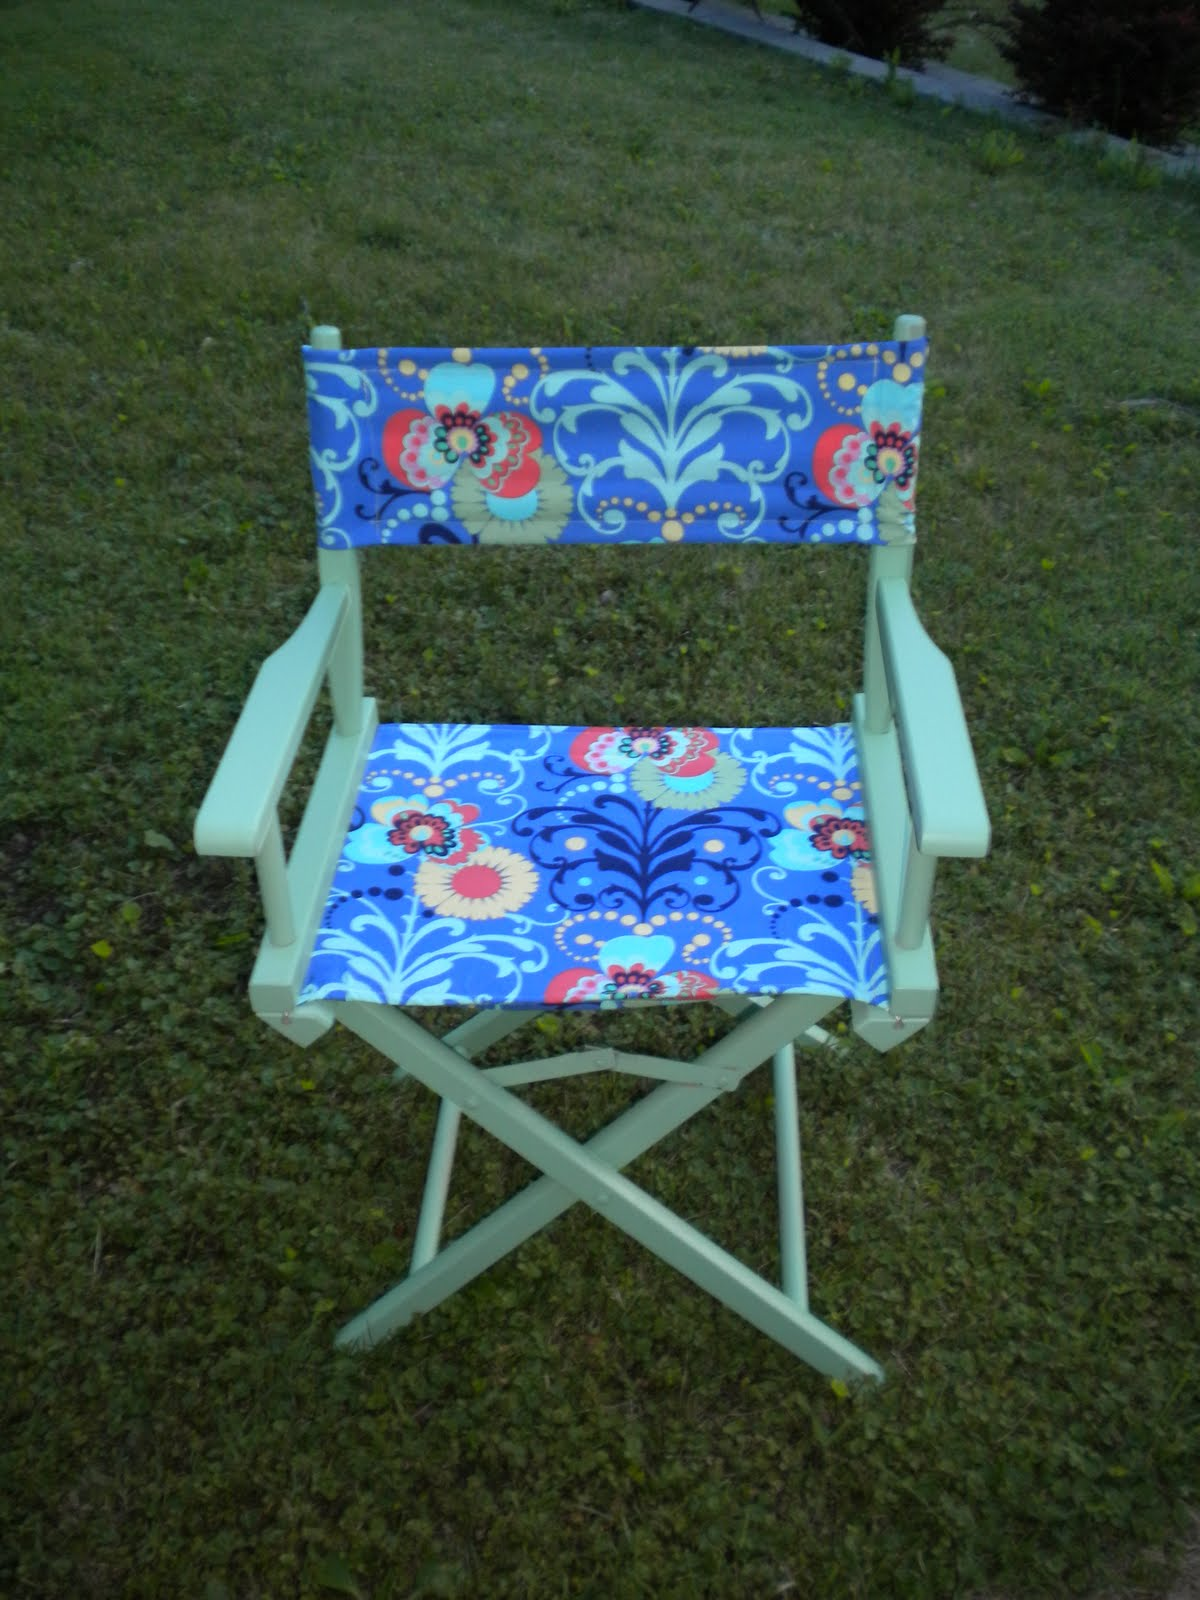 & The Dabbling Crafter: DIY Wednesday: Directoru0027s Chair Facelift